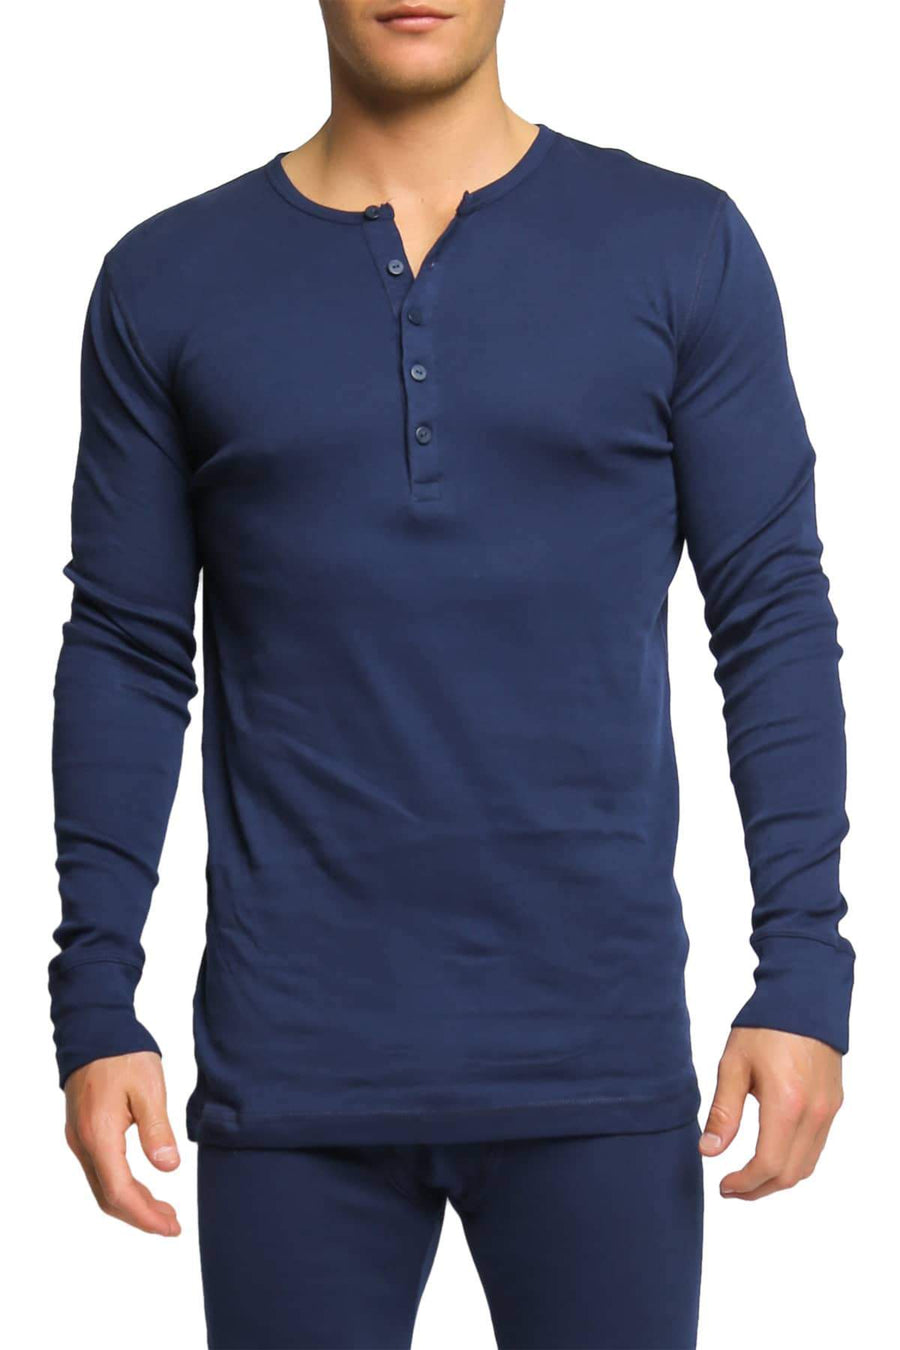 Shirts - 2(X)IST Navy Essential Long Sleeve Henley -   jetcube